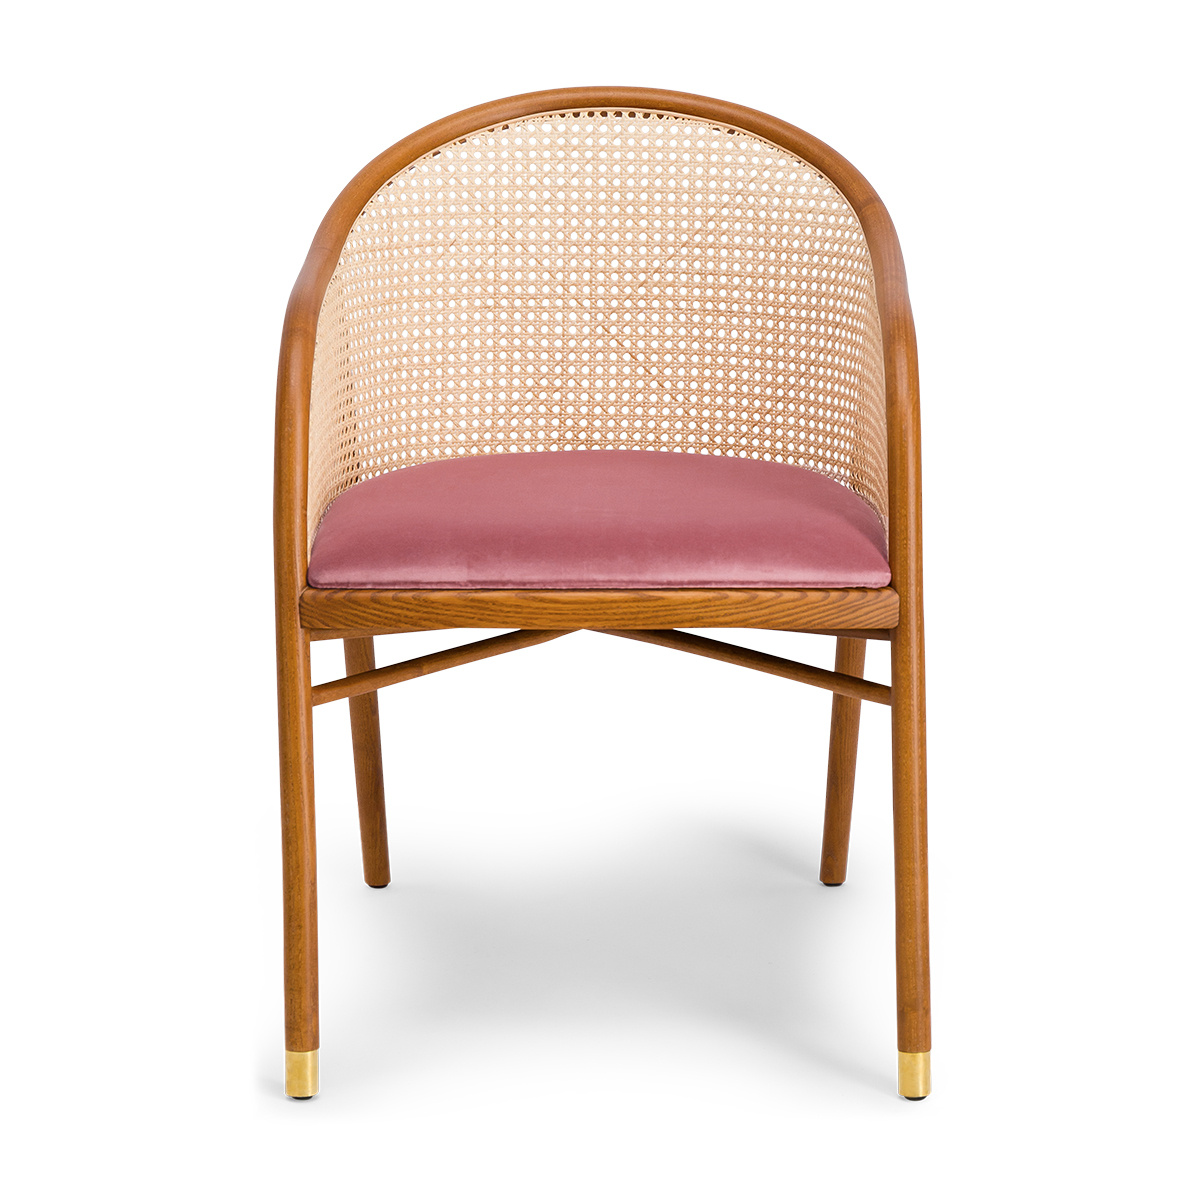 Cavallo Armchair, Pink Velvet with Cherrywood Frame